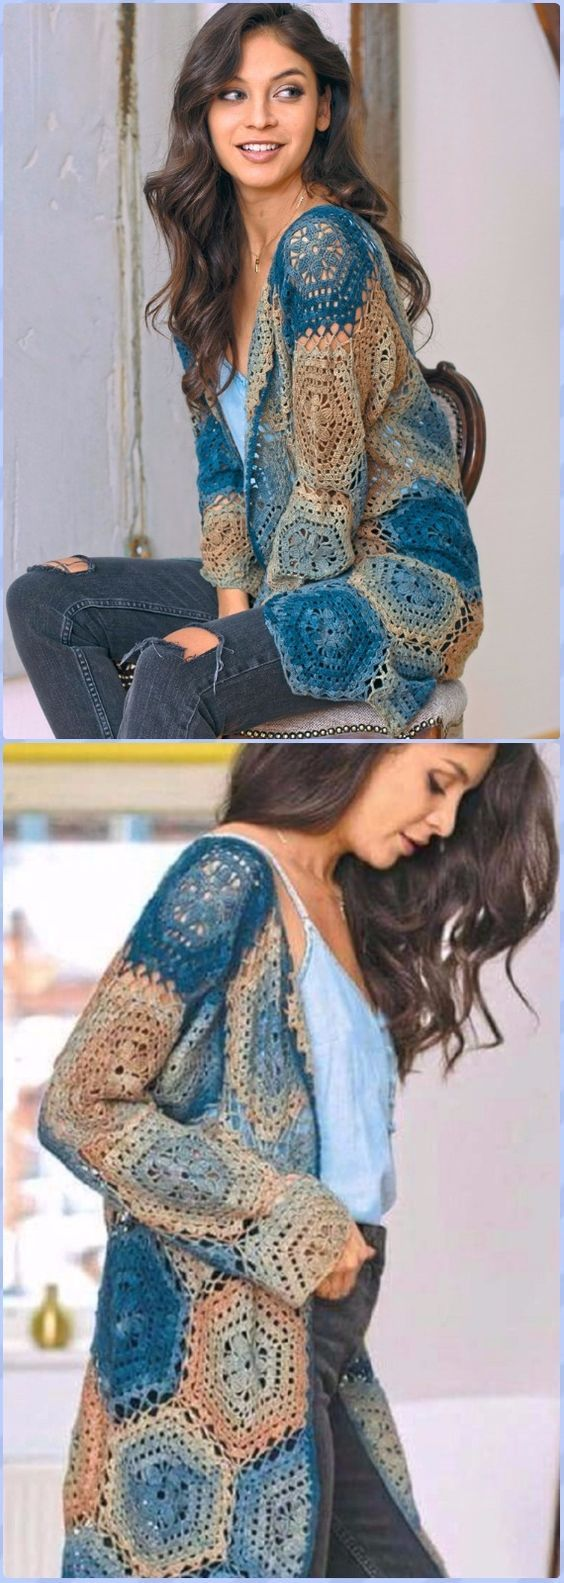 Crochet Summer Hexagon Cardigan Free Pattern - Crochet Women Sweater Coat & Cardigan Free Patterns